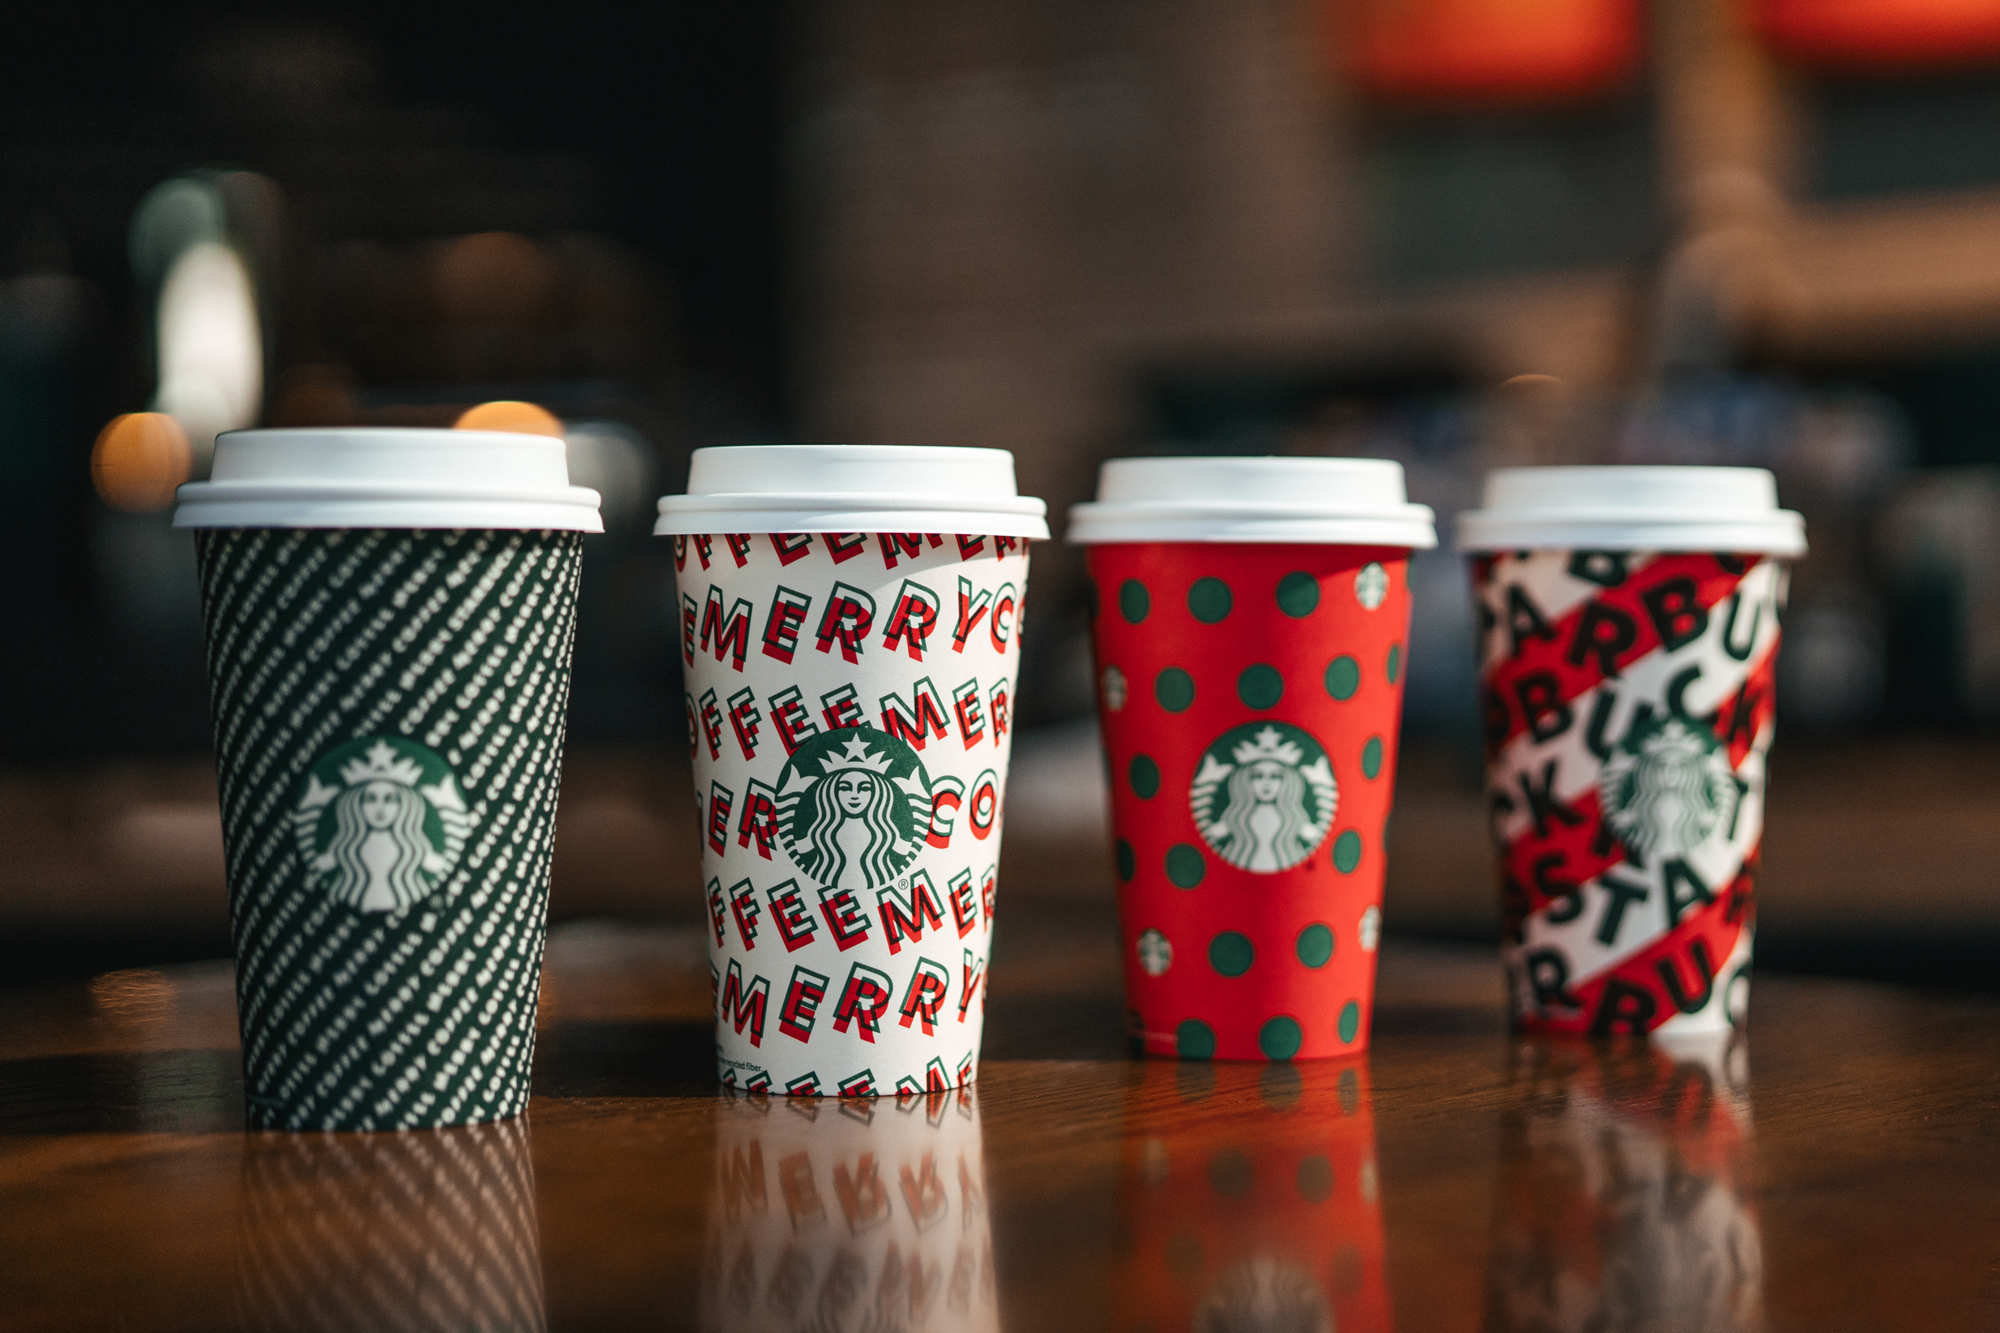 Starbucks Holiday Drinks Calories Sugar Ranked By Dietitians